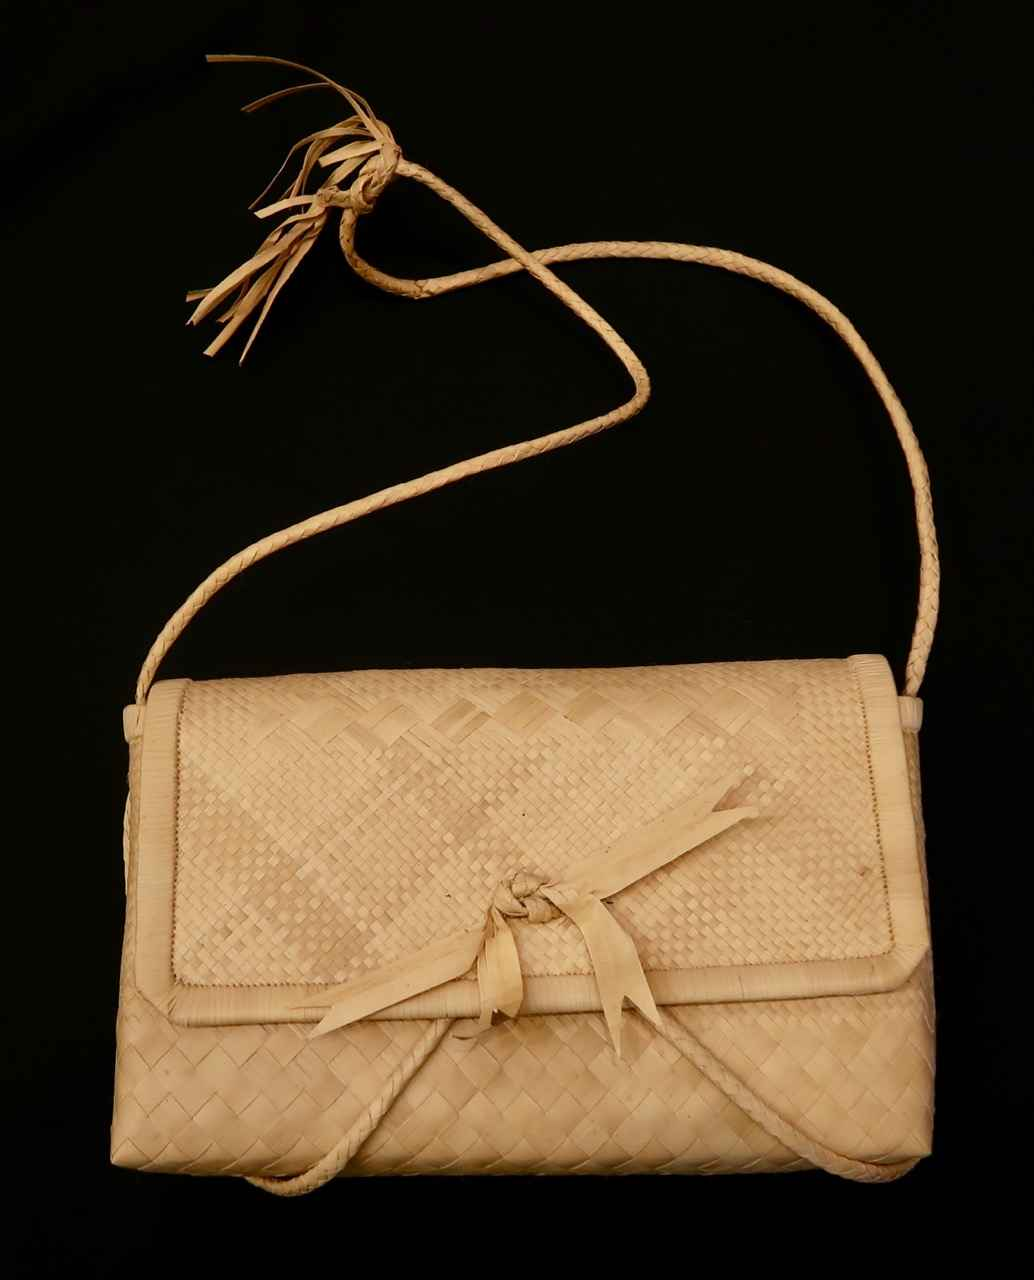 Woven Purse with Ribb... by   Unknown - Masterpiece Online